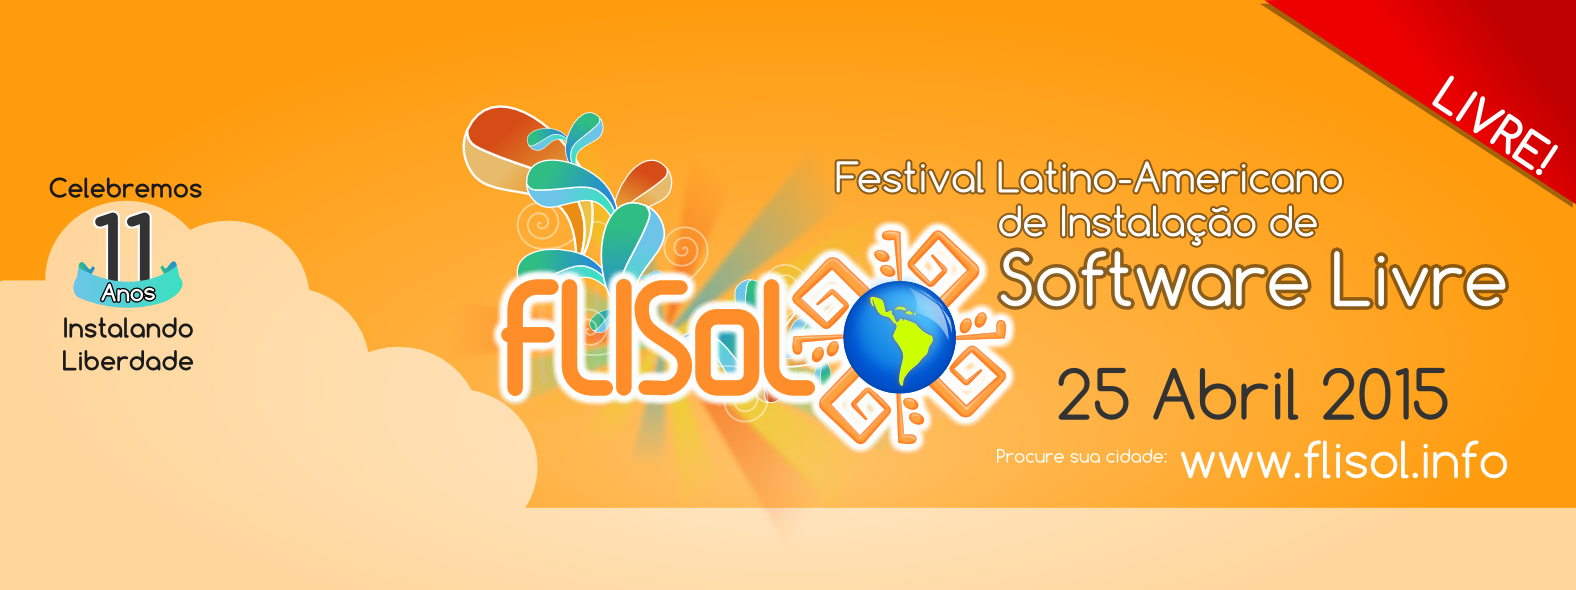 flisol2015-twitter-topo.png